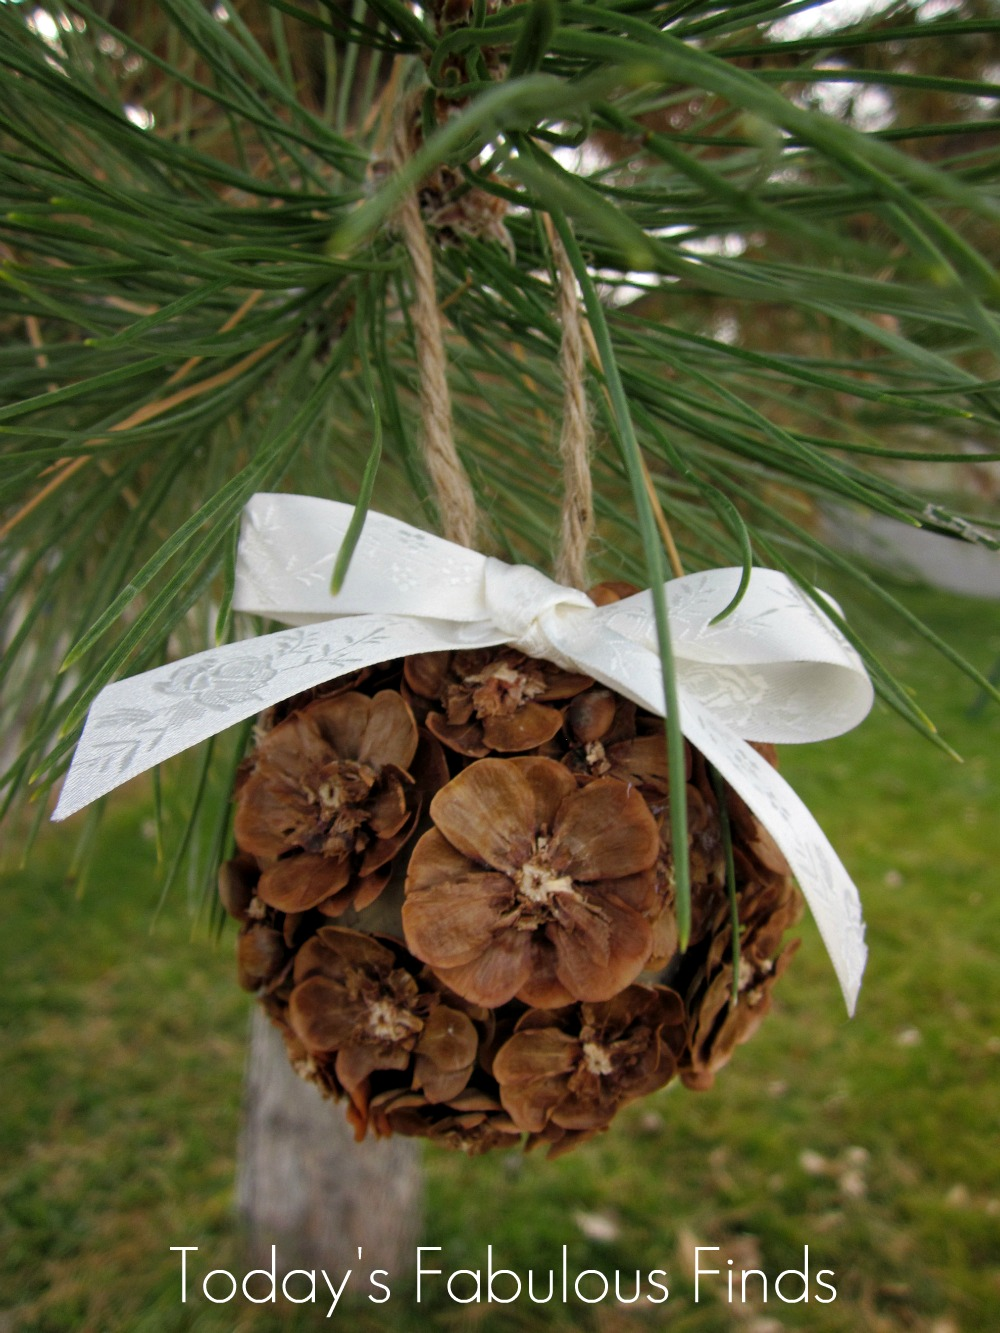 today 39 s fabulous finds handmade pine cone flower ornaments. Black Bedroom Furniture Sets. Home Design Ideas